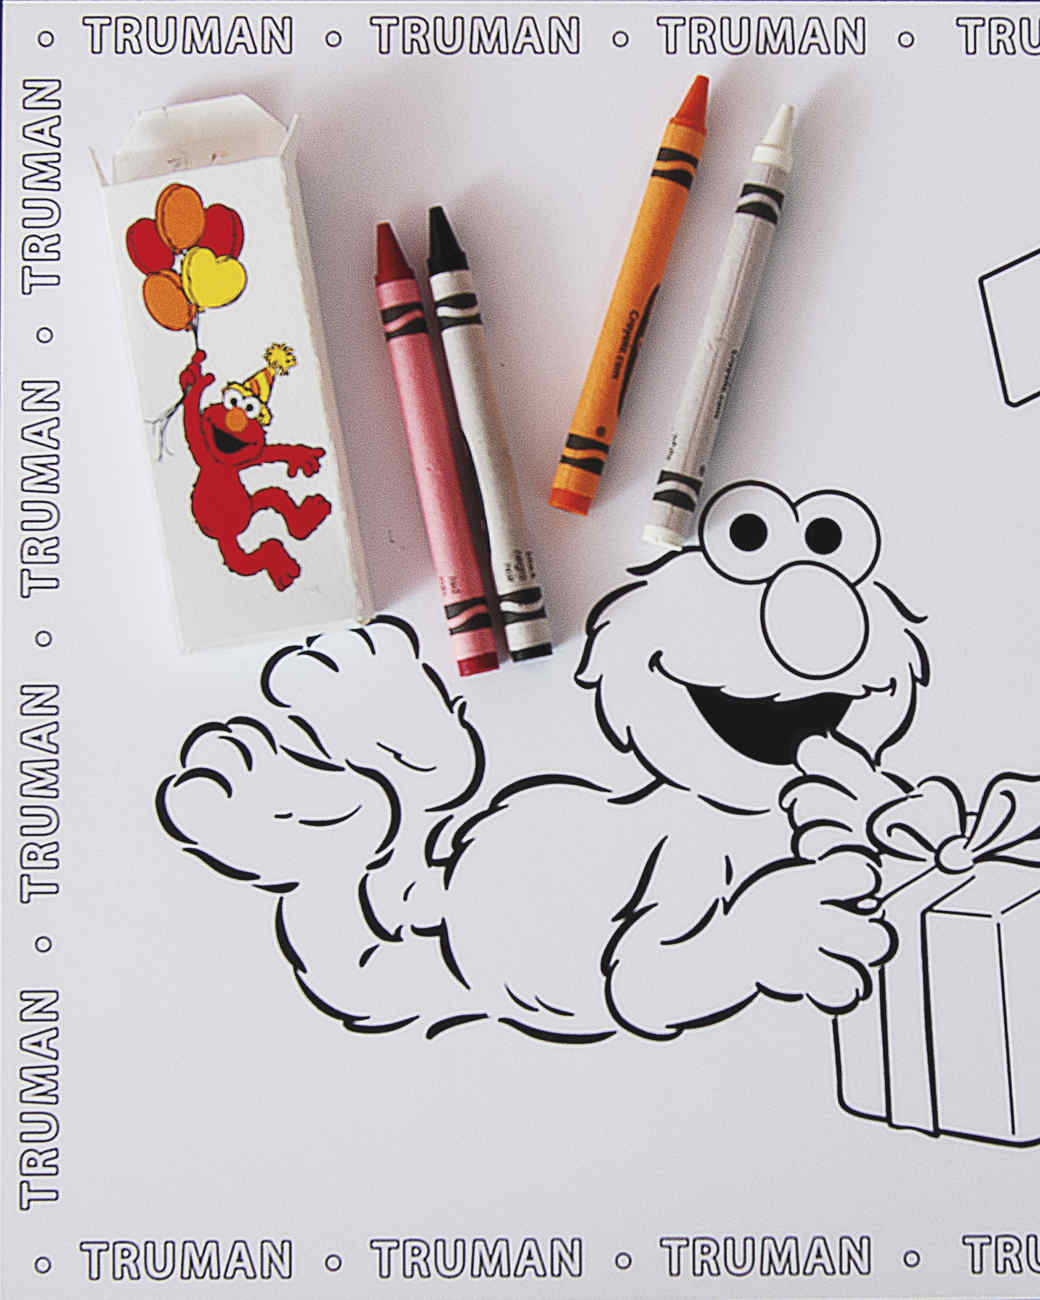 elmo1mrc8751-md110067.jpg